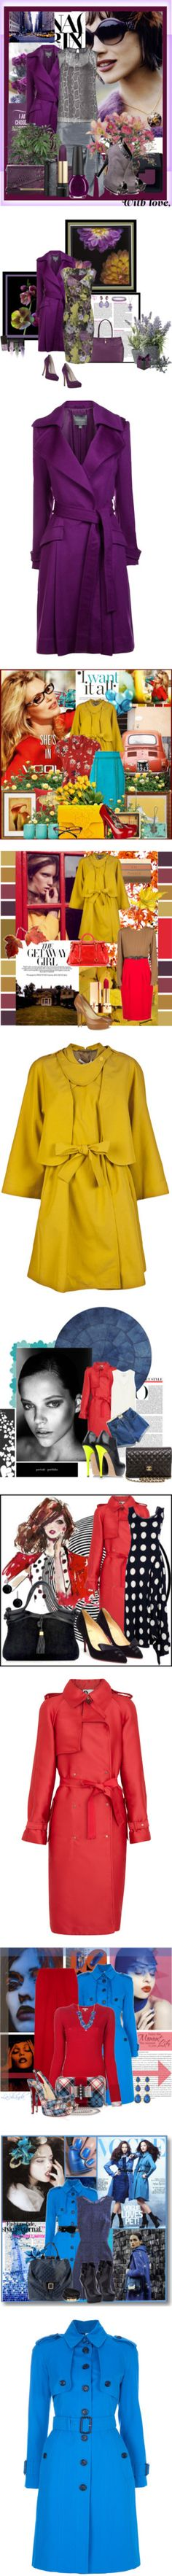 """""""Colored Trench Coats"""" by sylandrya ❤ liked on Polyvore"""